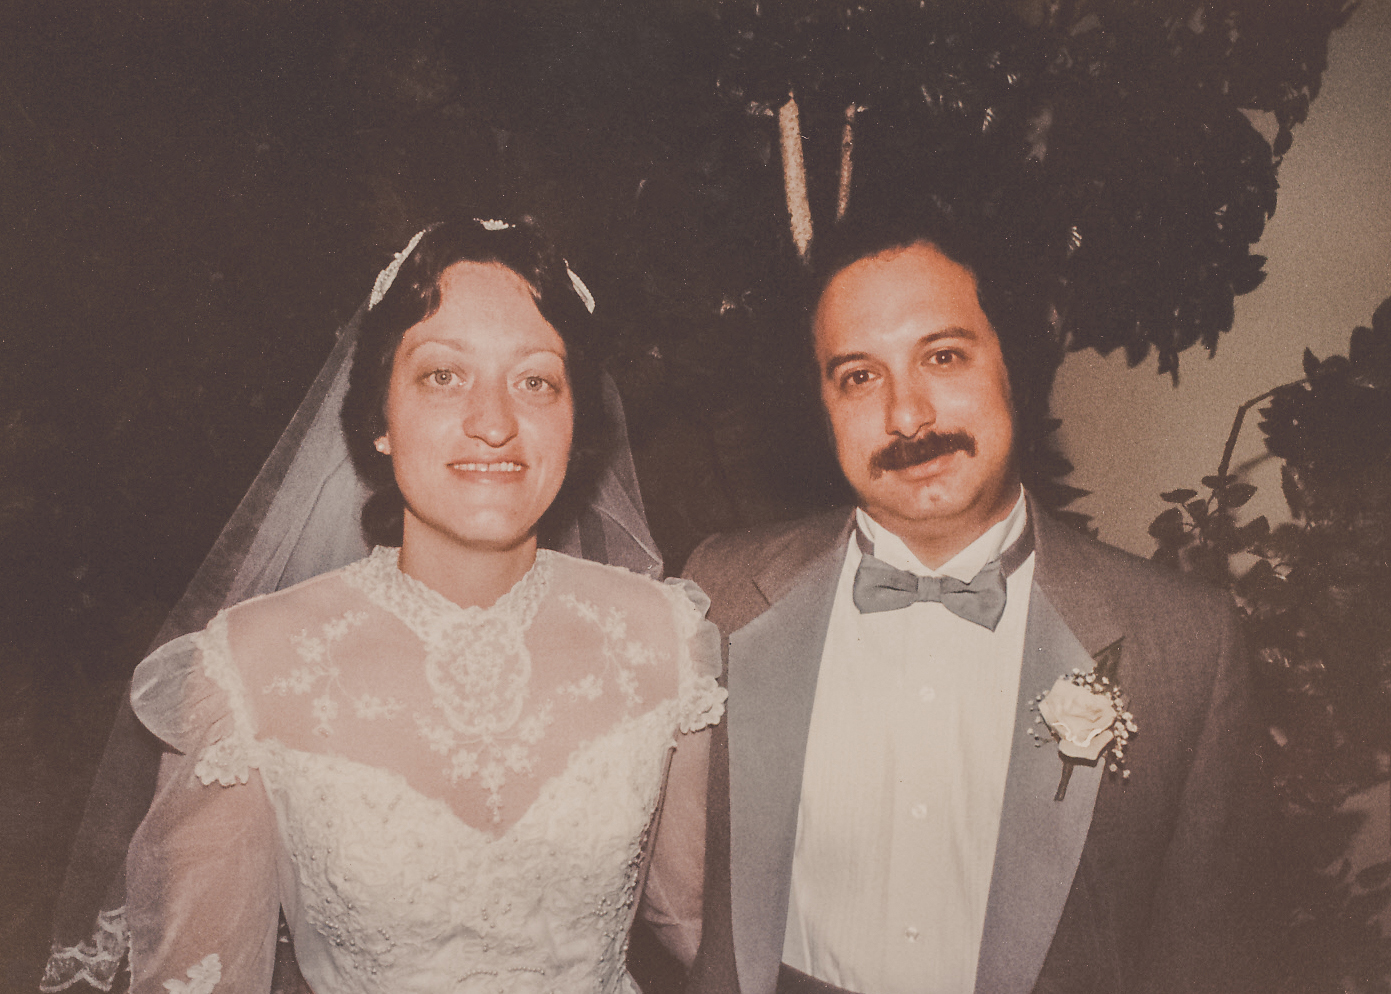 Aunt Bettijean and Uncle Sheldon on their wedding day.